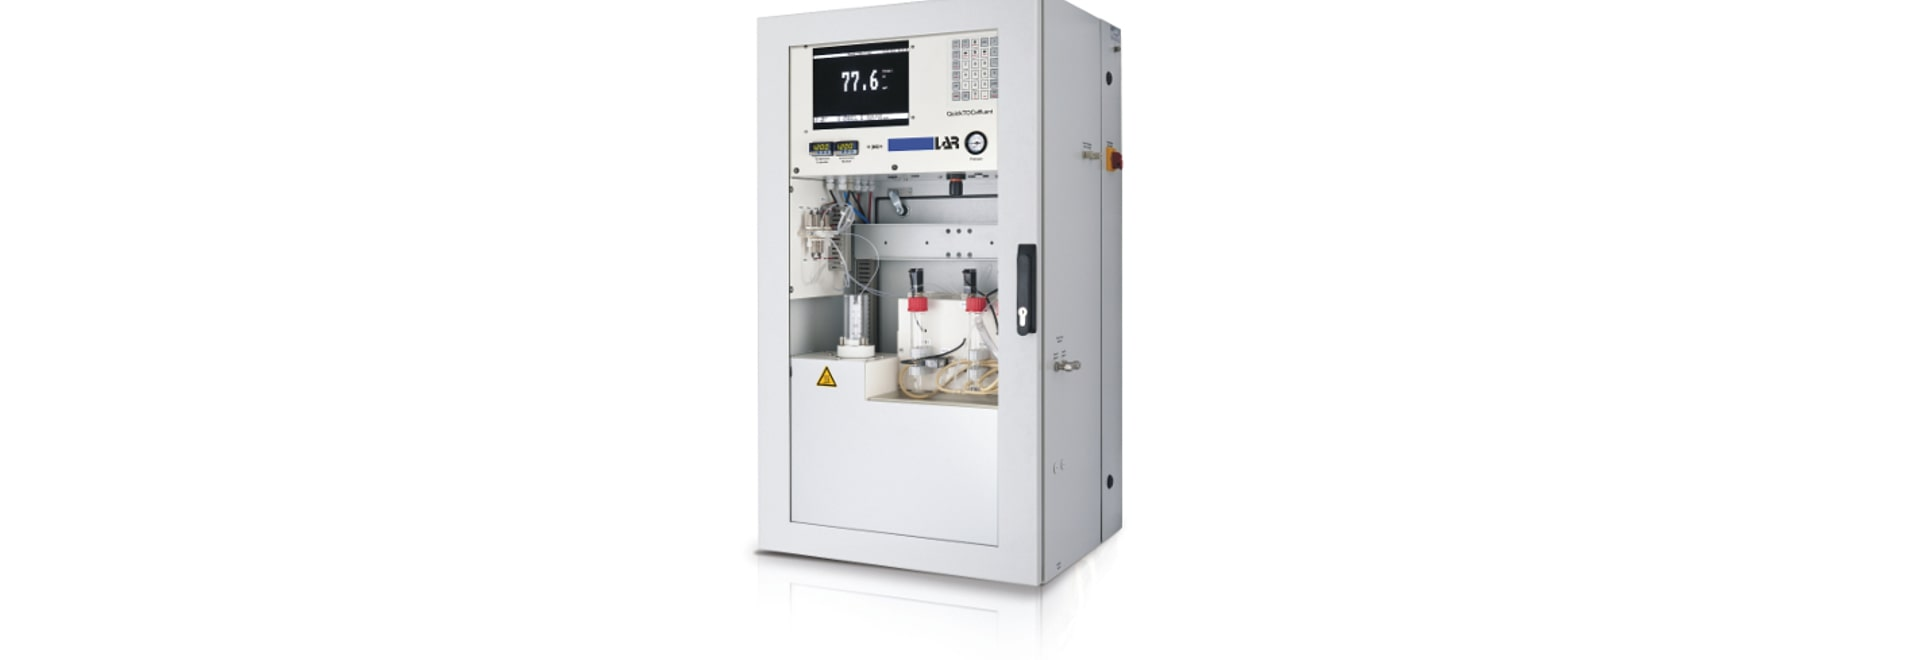 TOC analyzer for the plant's effluent